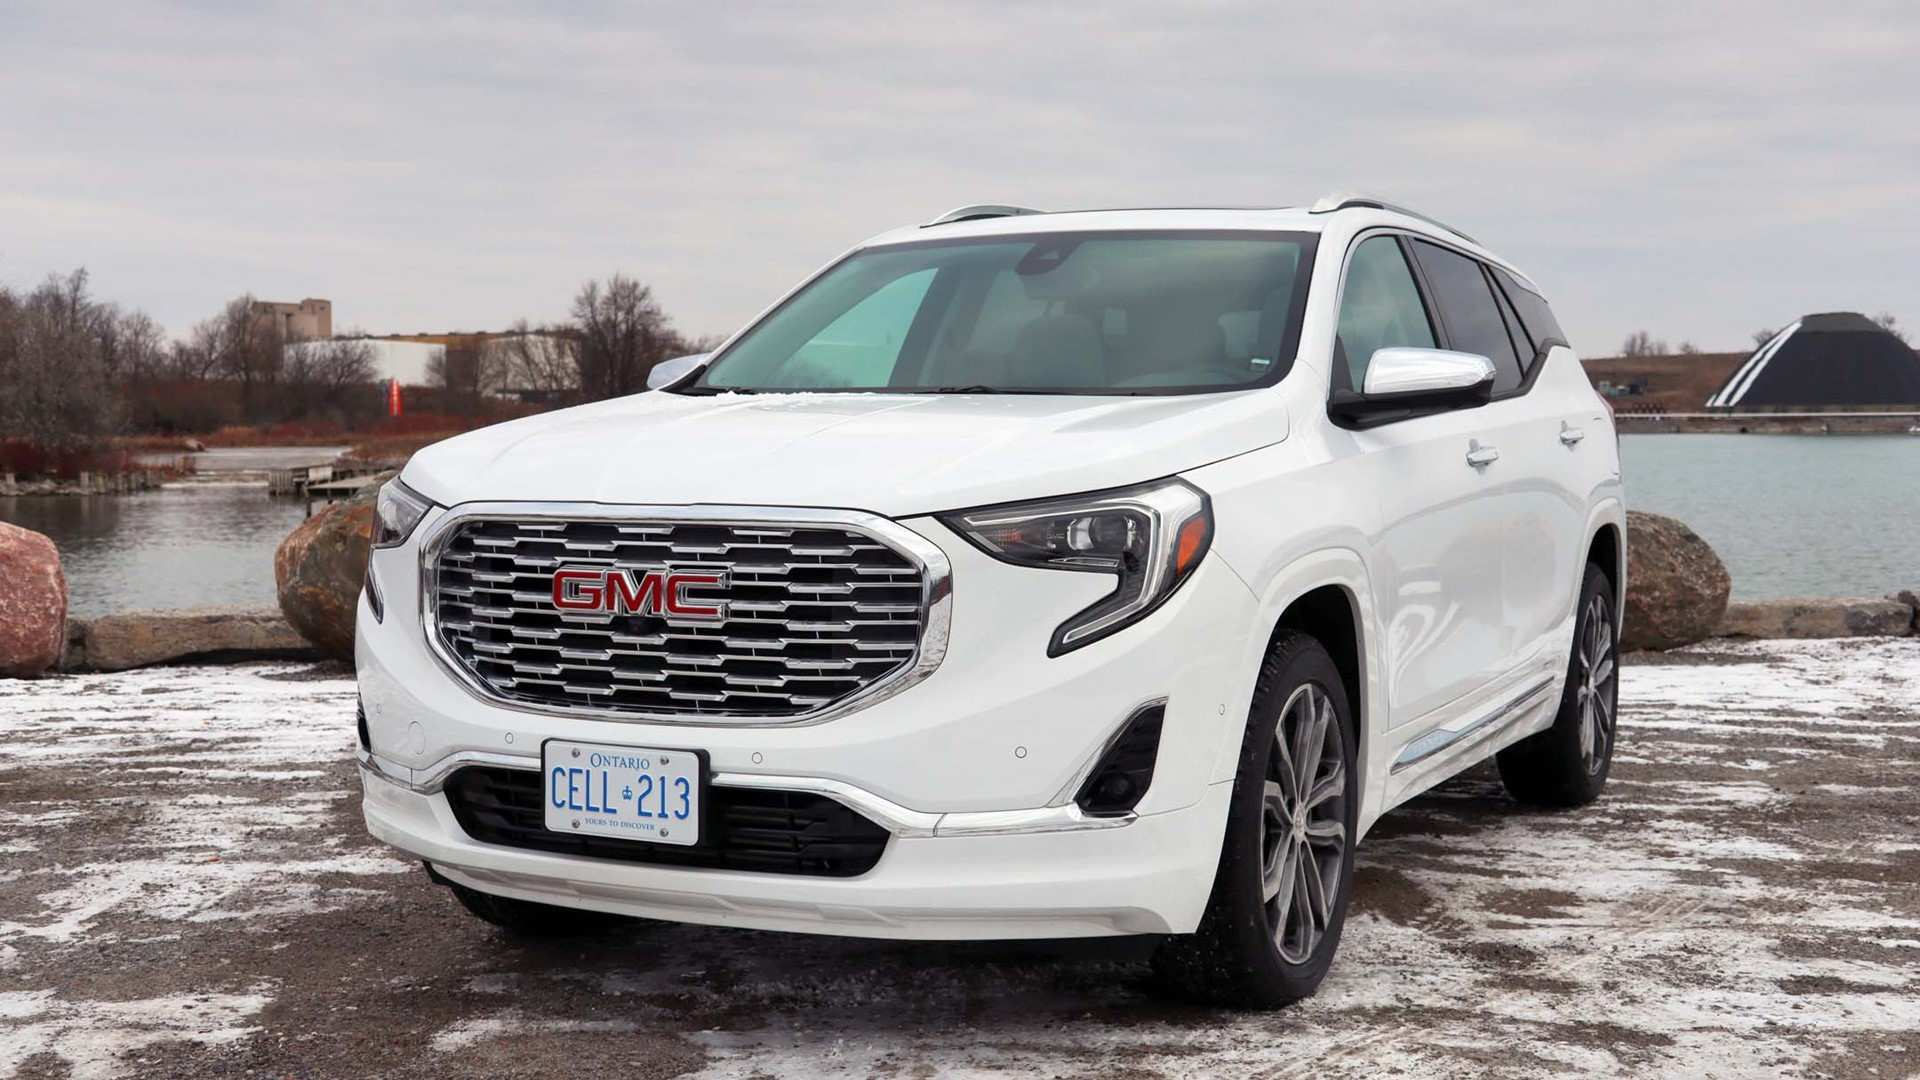 95 All New The Gmc 2019 Terrain Denali First Drive Configurations with The Gmc 2019 Terrain Denali First Drive